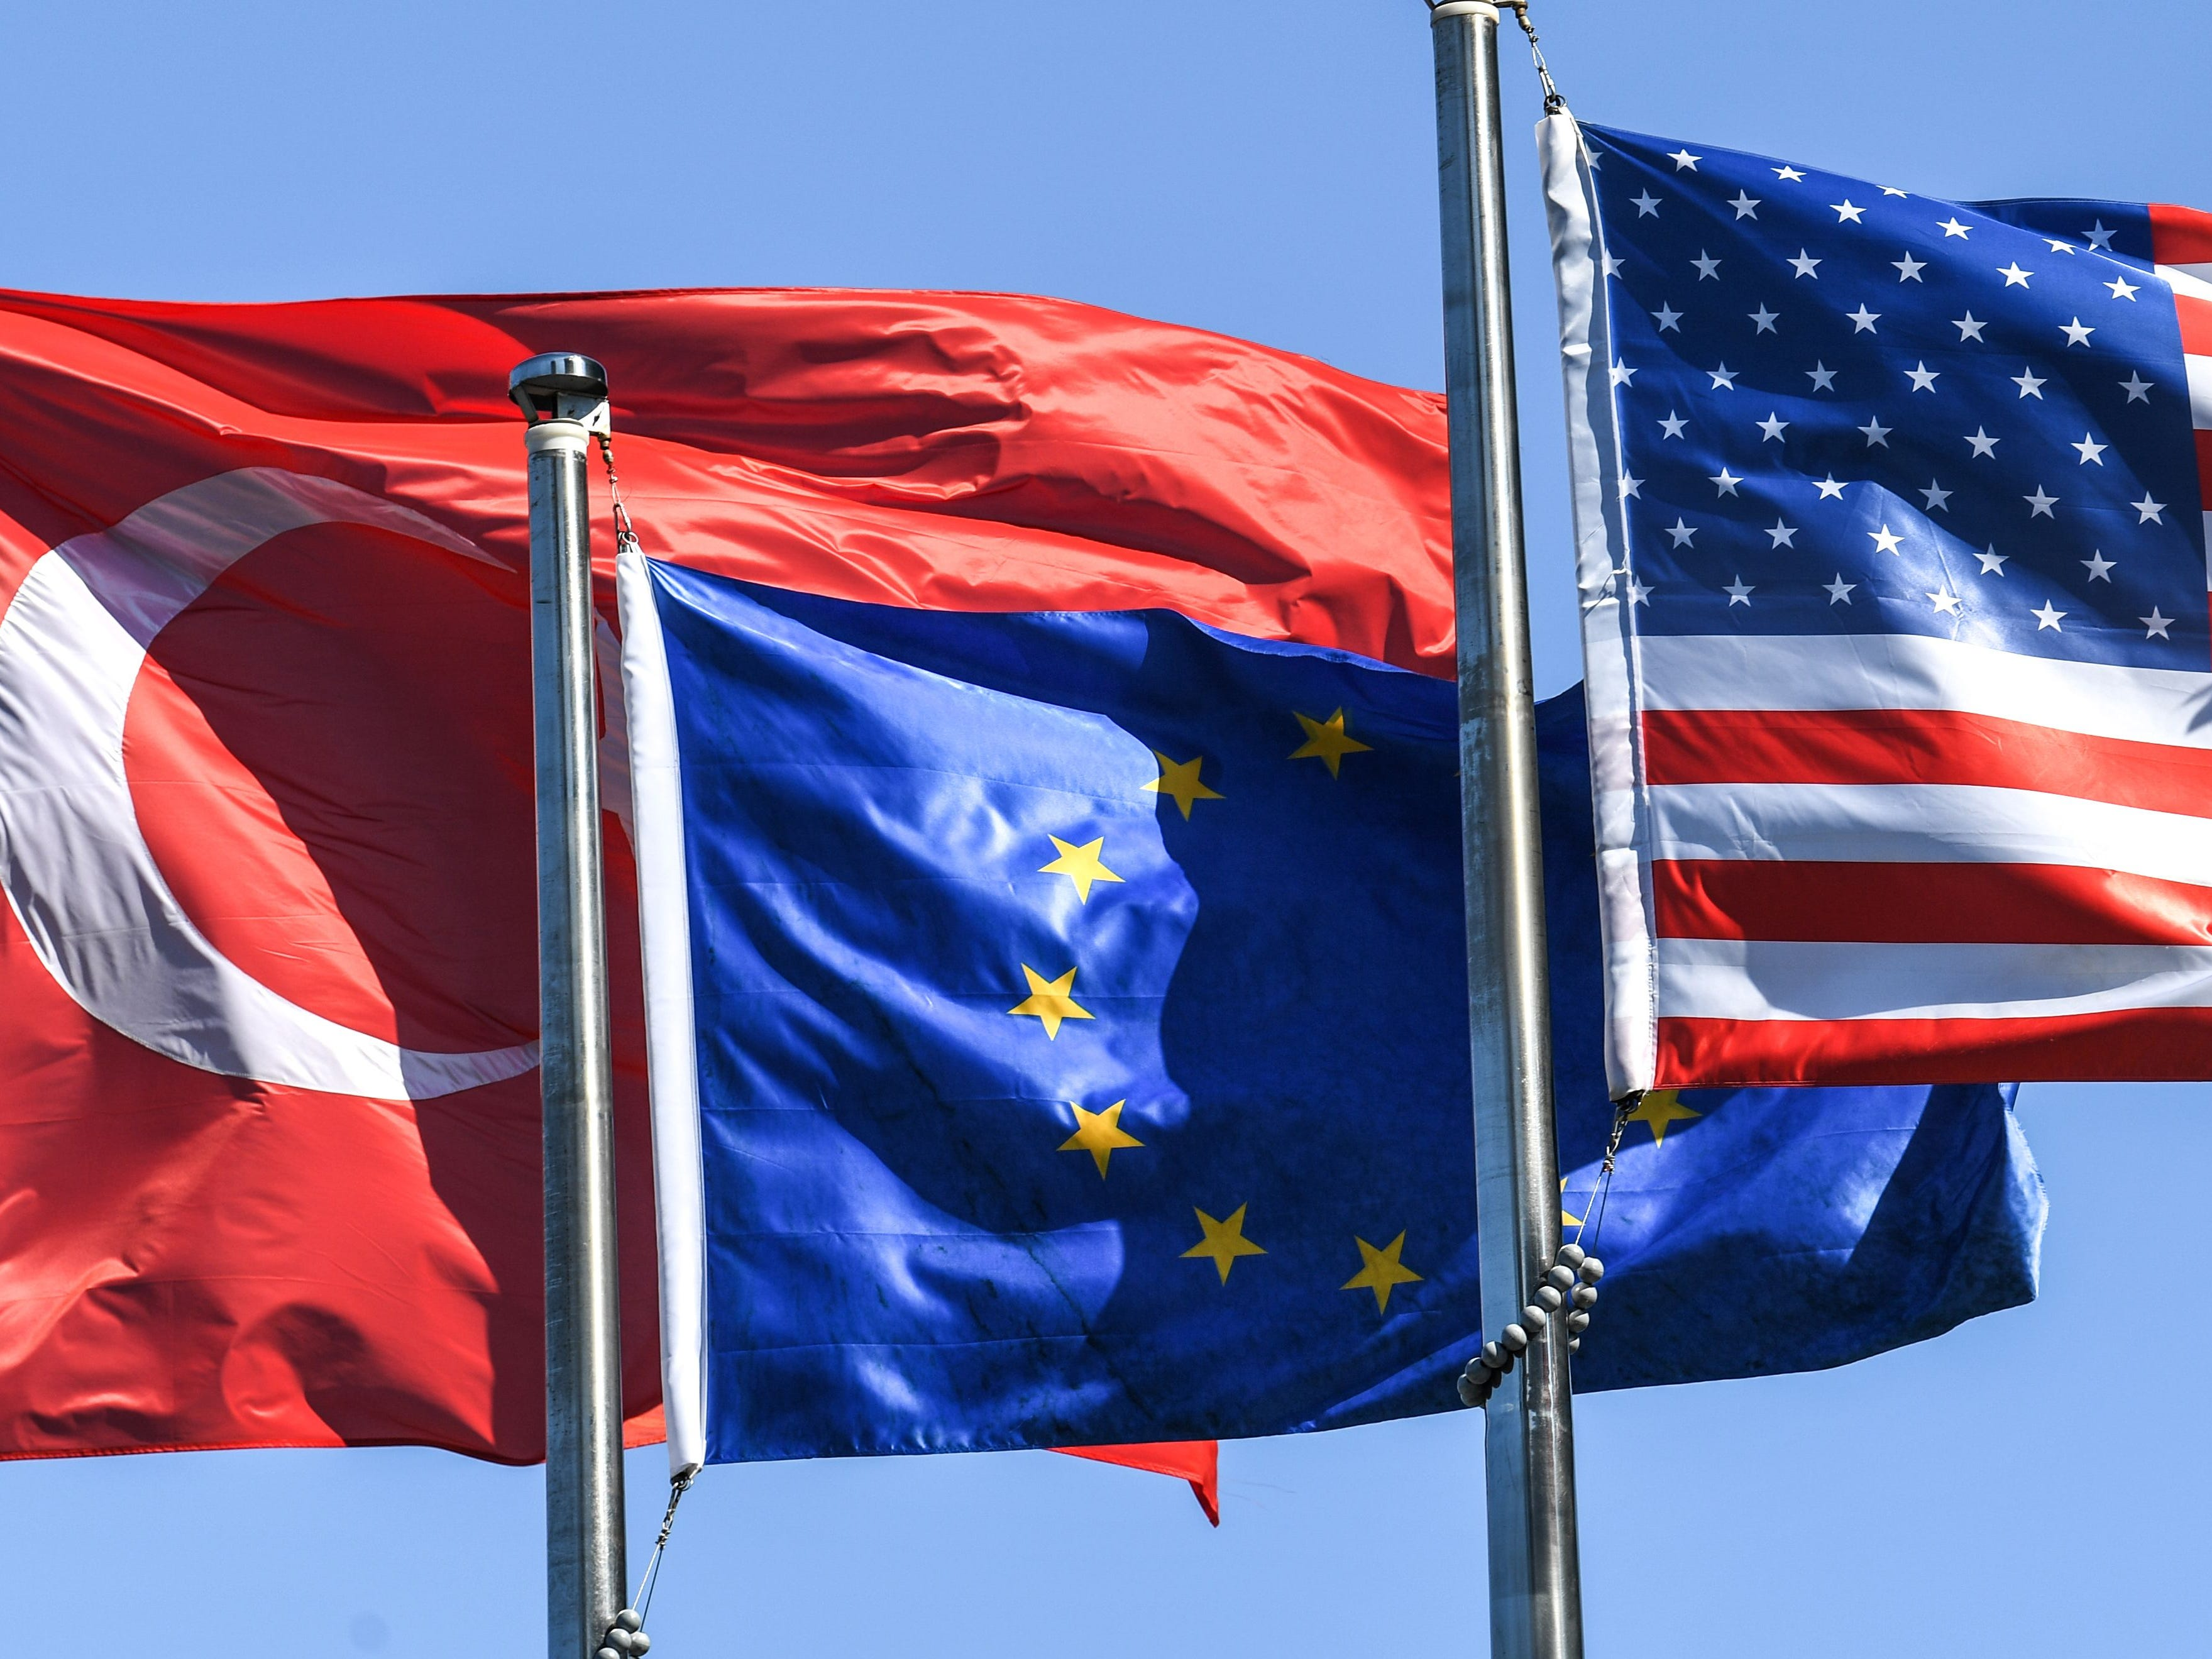 From left, the Turkish flag, European Union's flag and U.S. flag fly in the wind at the financial and business district Maslak on Aug. 15, 2018 in Istanbul.